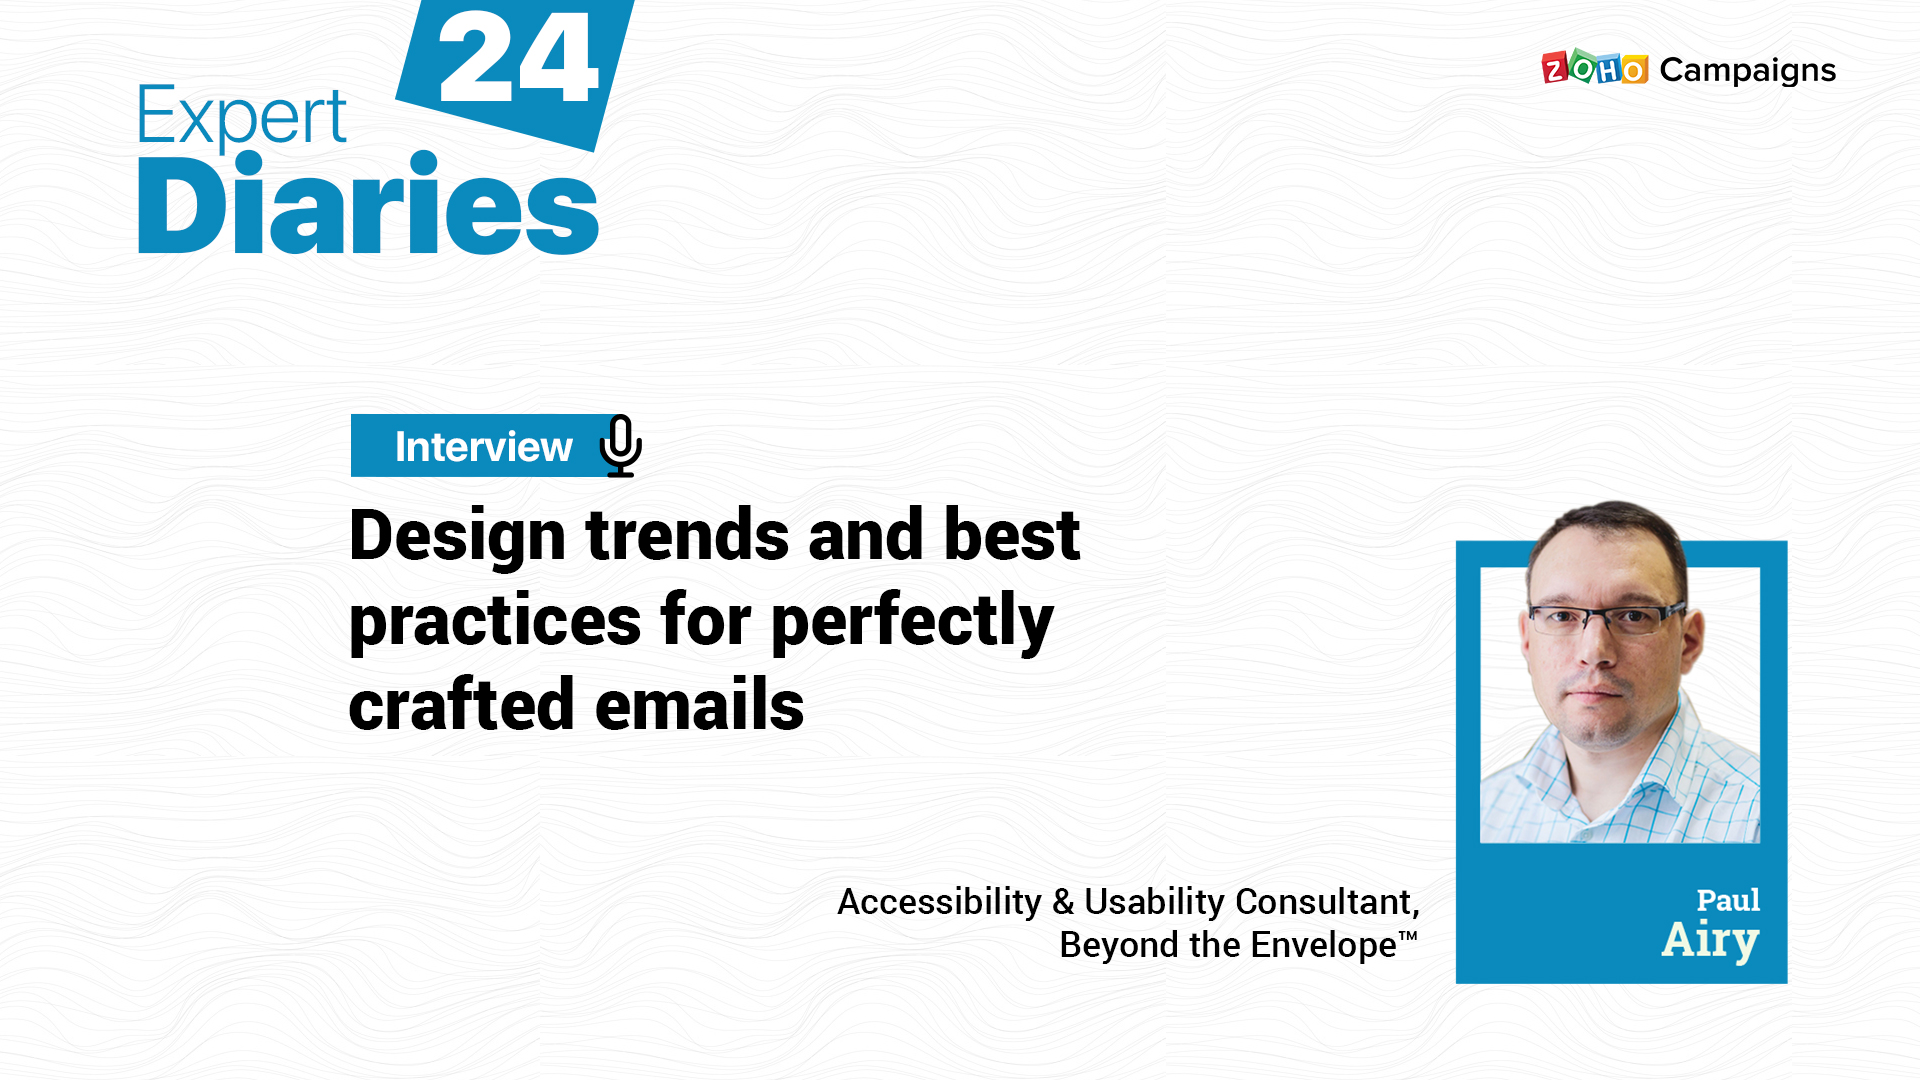 Design trends and best practices for perfectly crafted emails